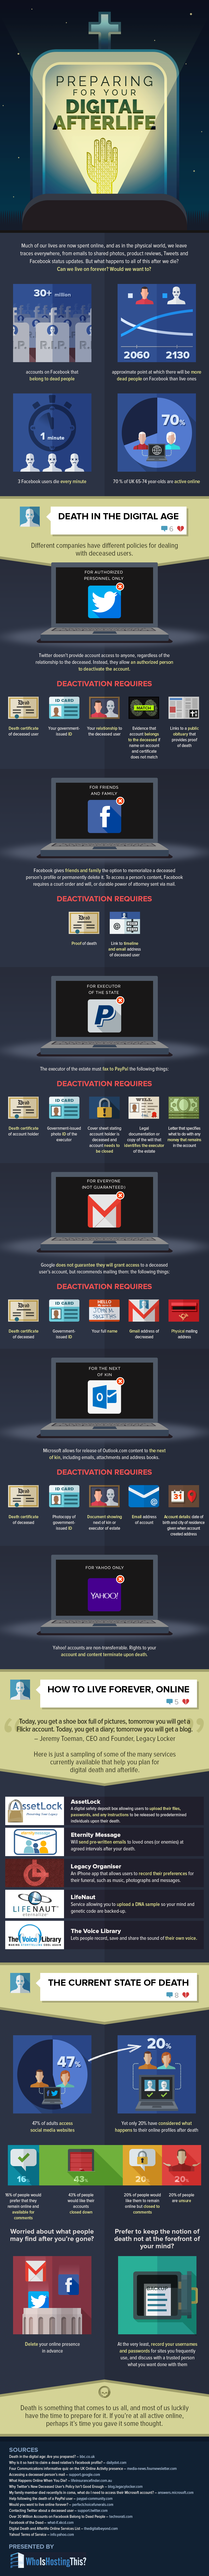 Your Digital Afterlife Infographic